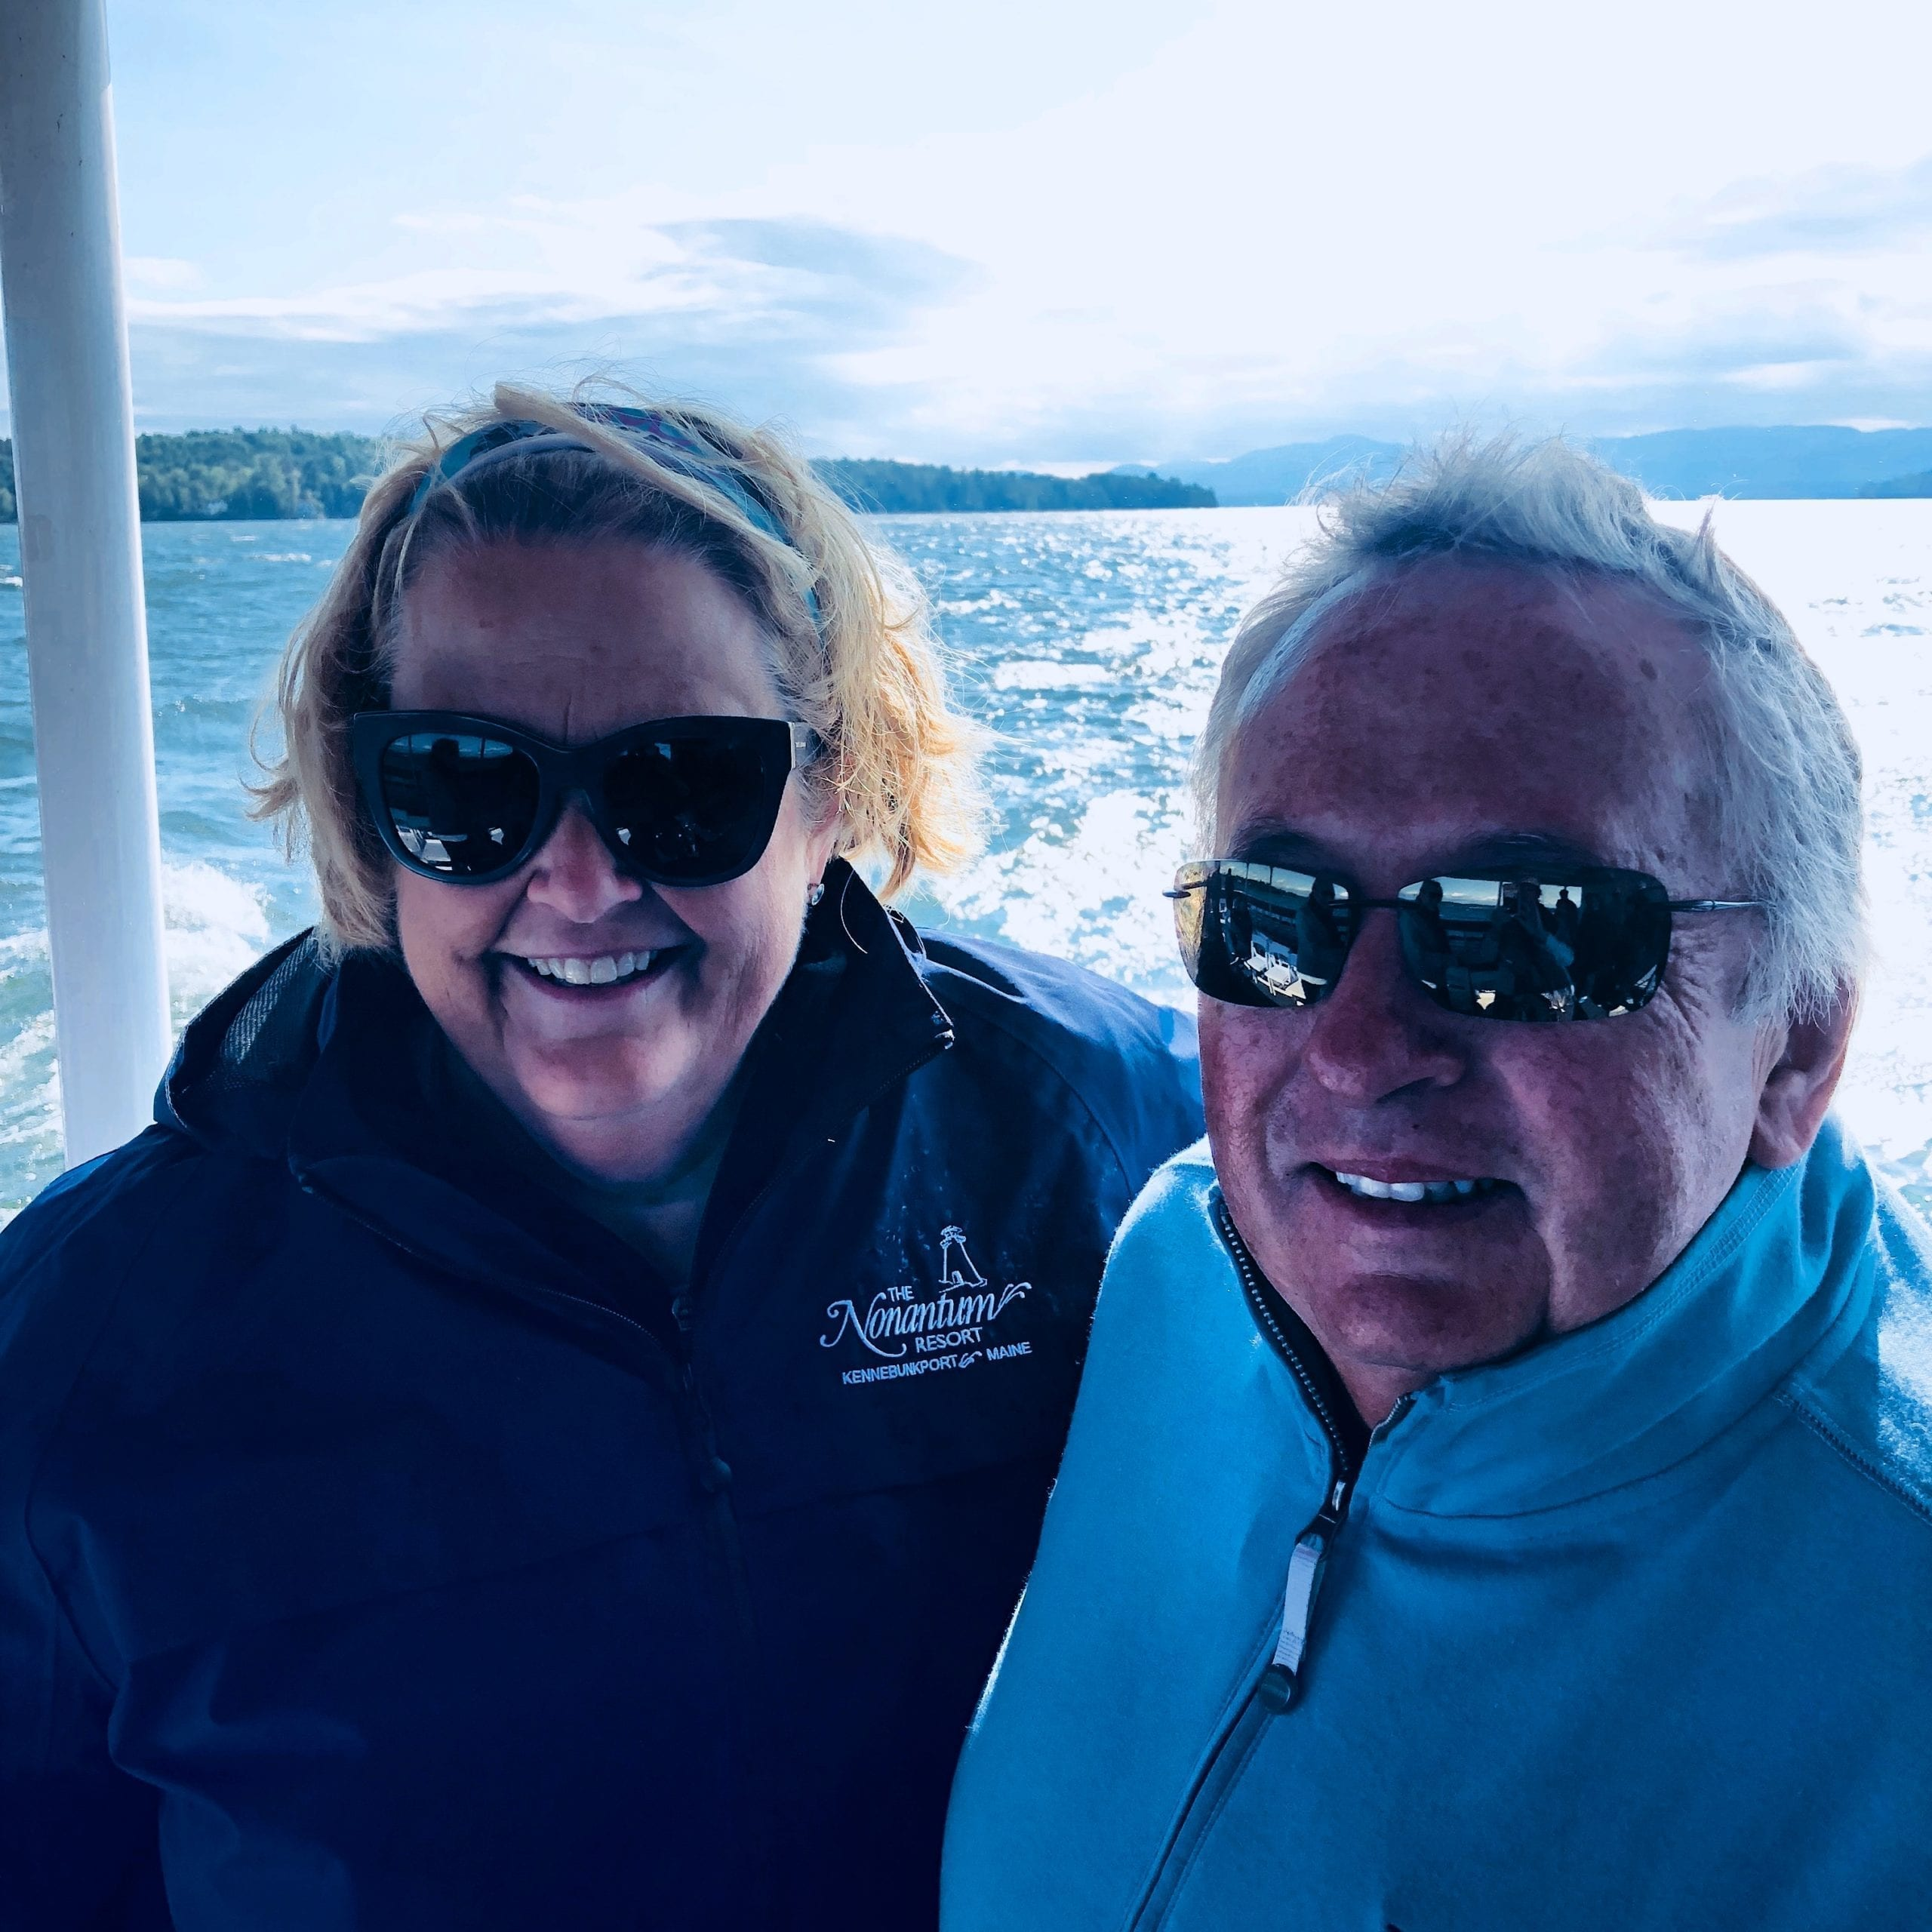 Jean and Bob on a boat ride.